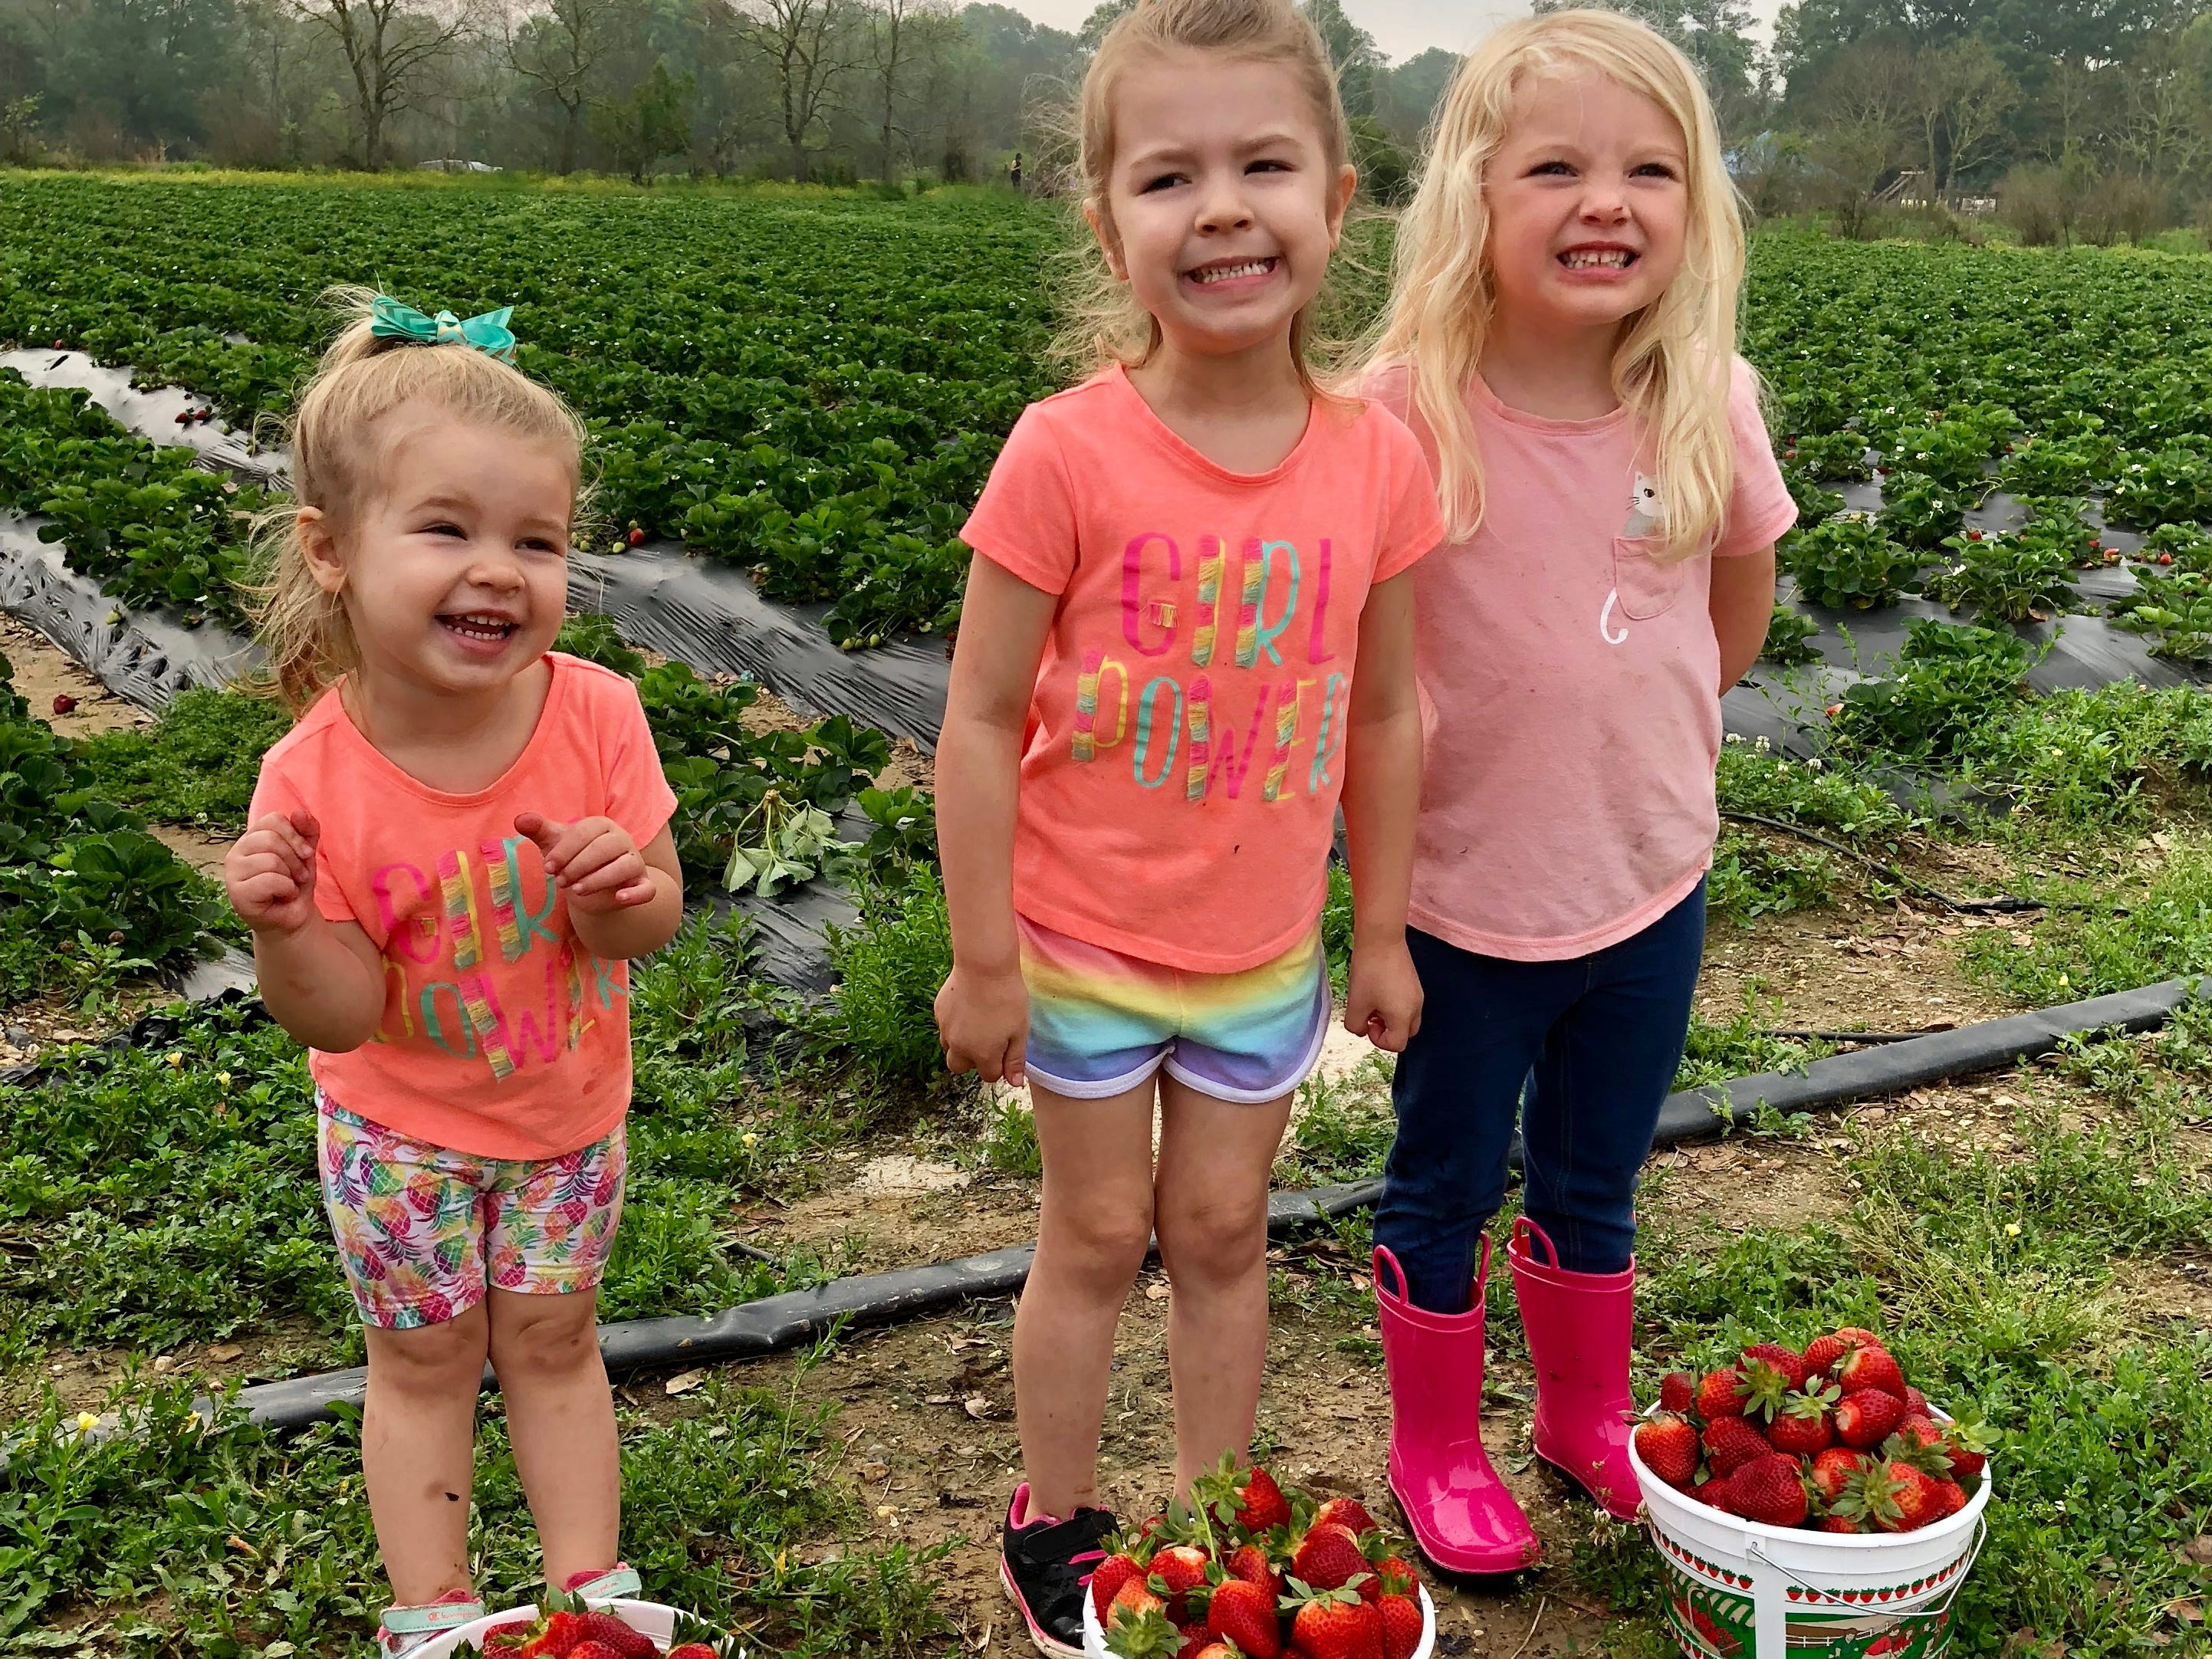 Cousins Marie and Avery Guidry and Claire Ivy smile proudly with their loads of picked strawberries April 6  at Mrs. Heather's Strawberry Farm in Albany, Louisiana.